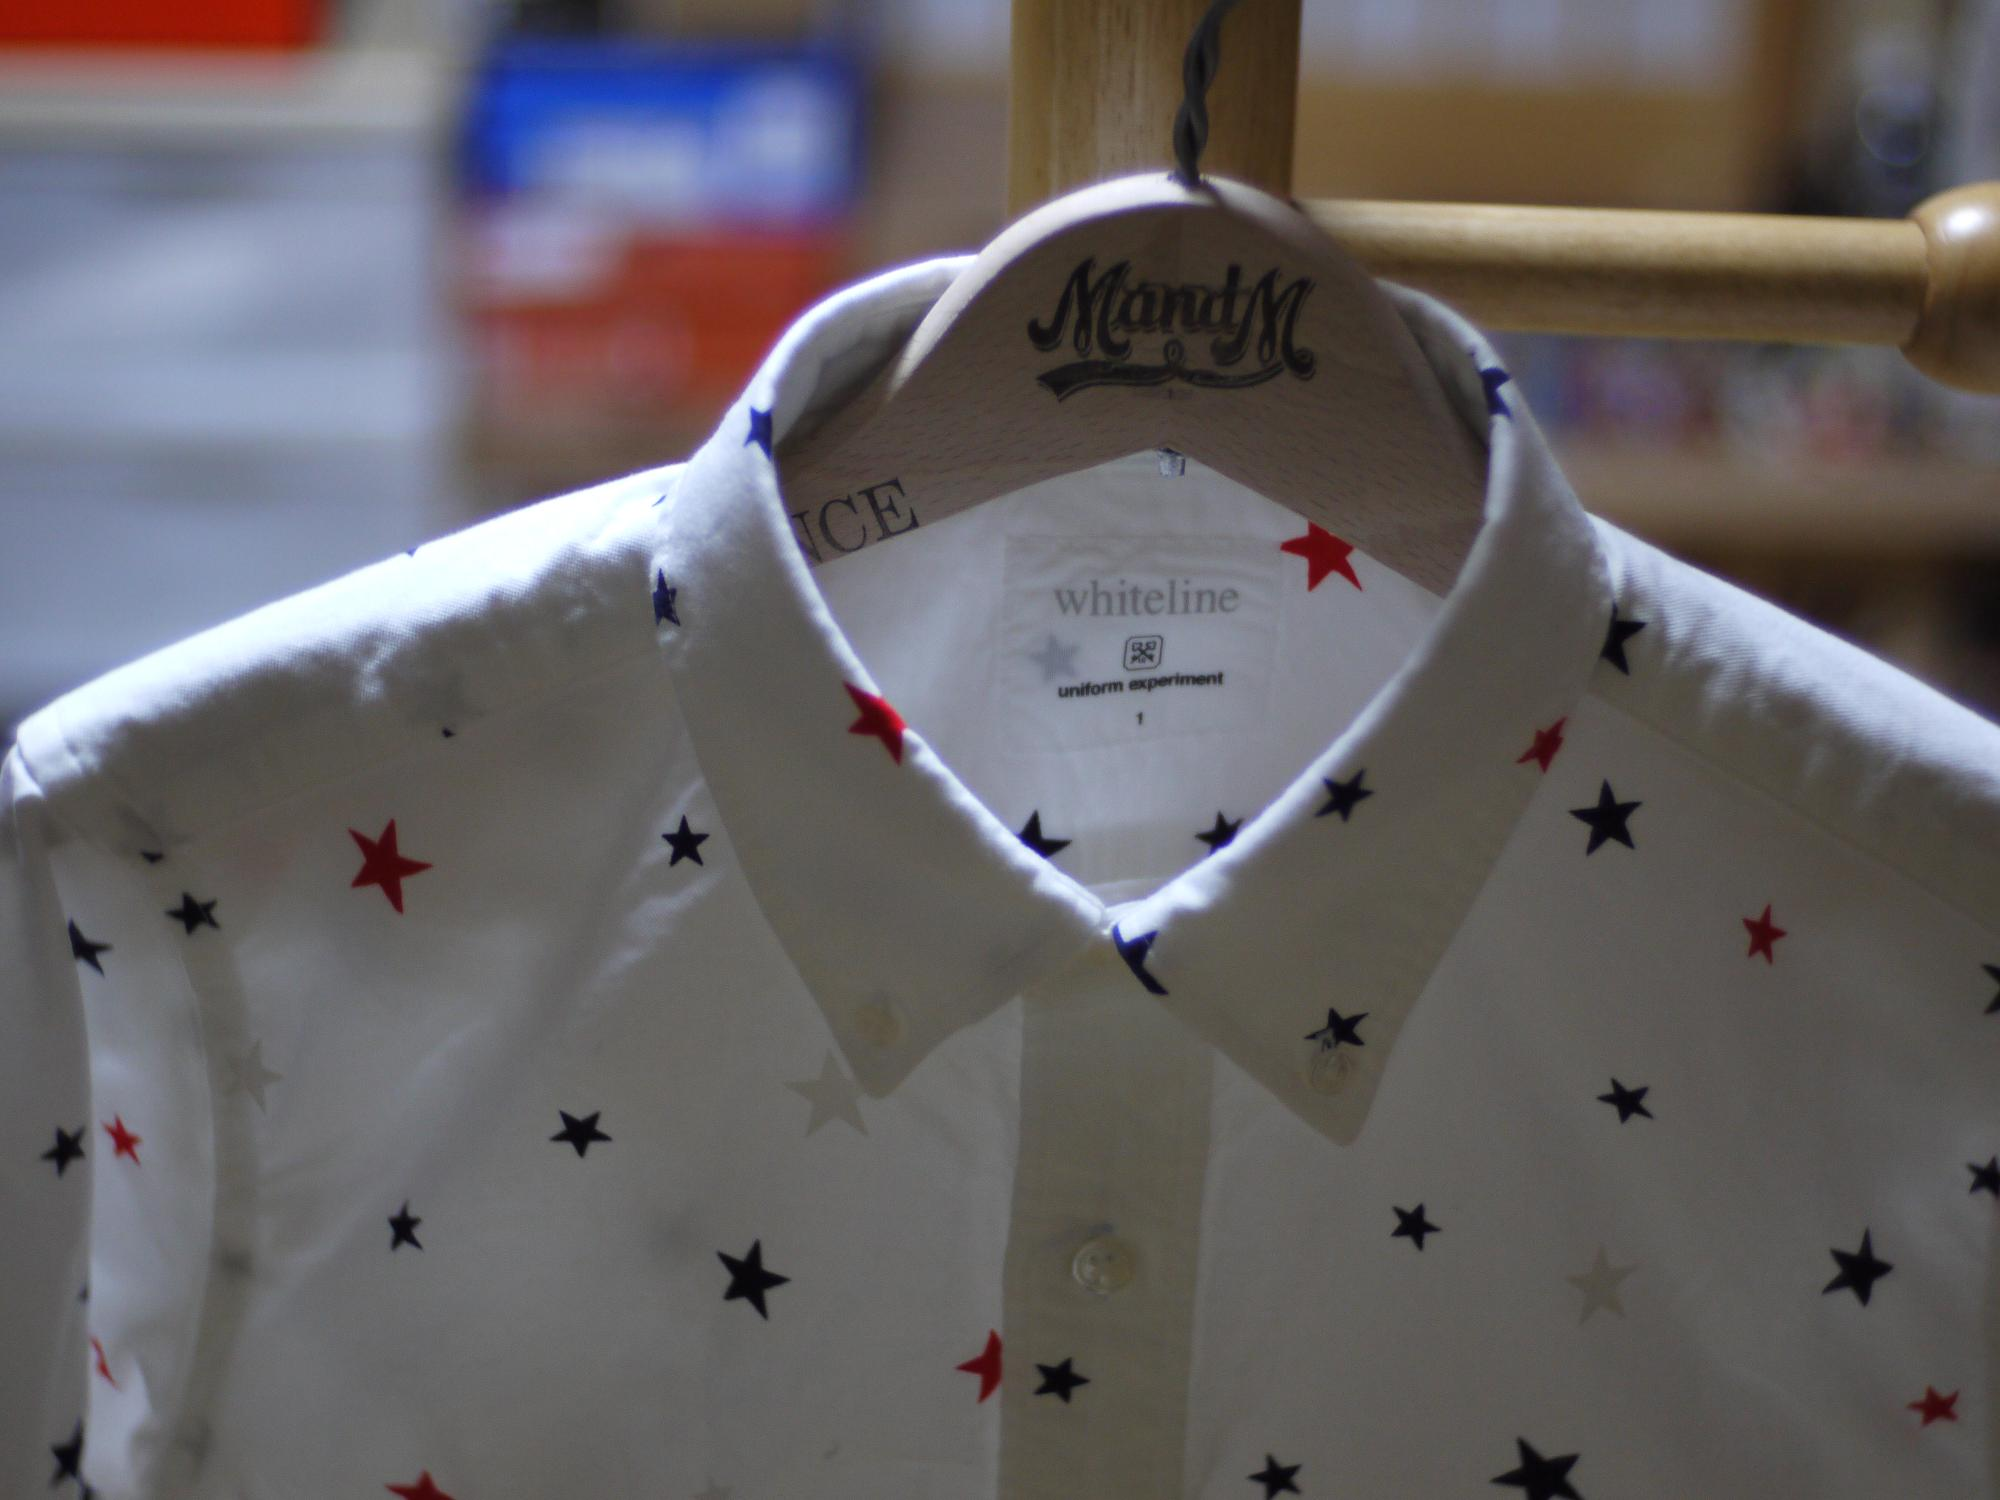 uniform experiment LS STAR PATTERN B.D SHIRT | Flickr - Photo Sharing!ls star